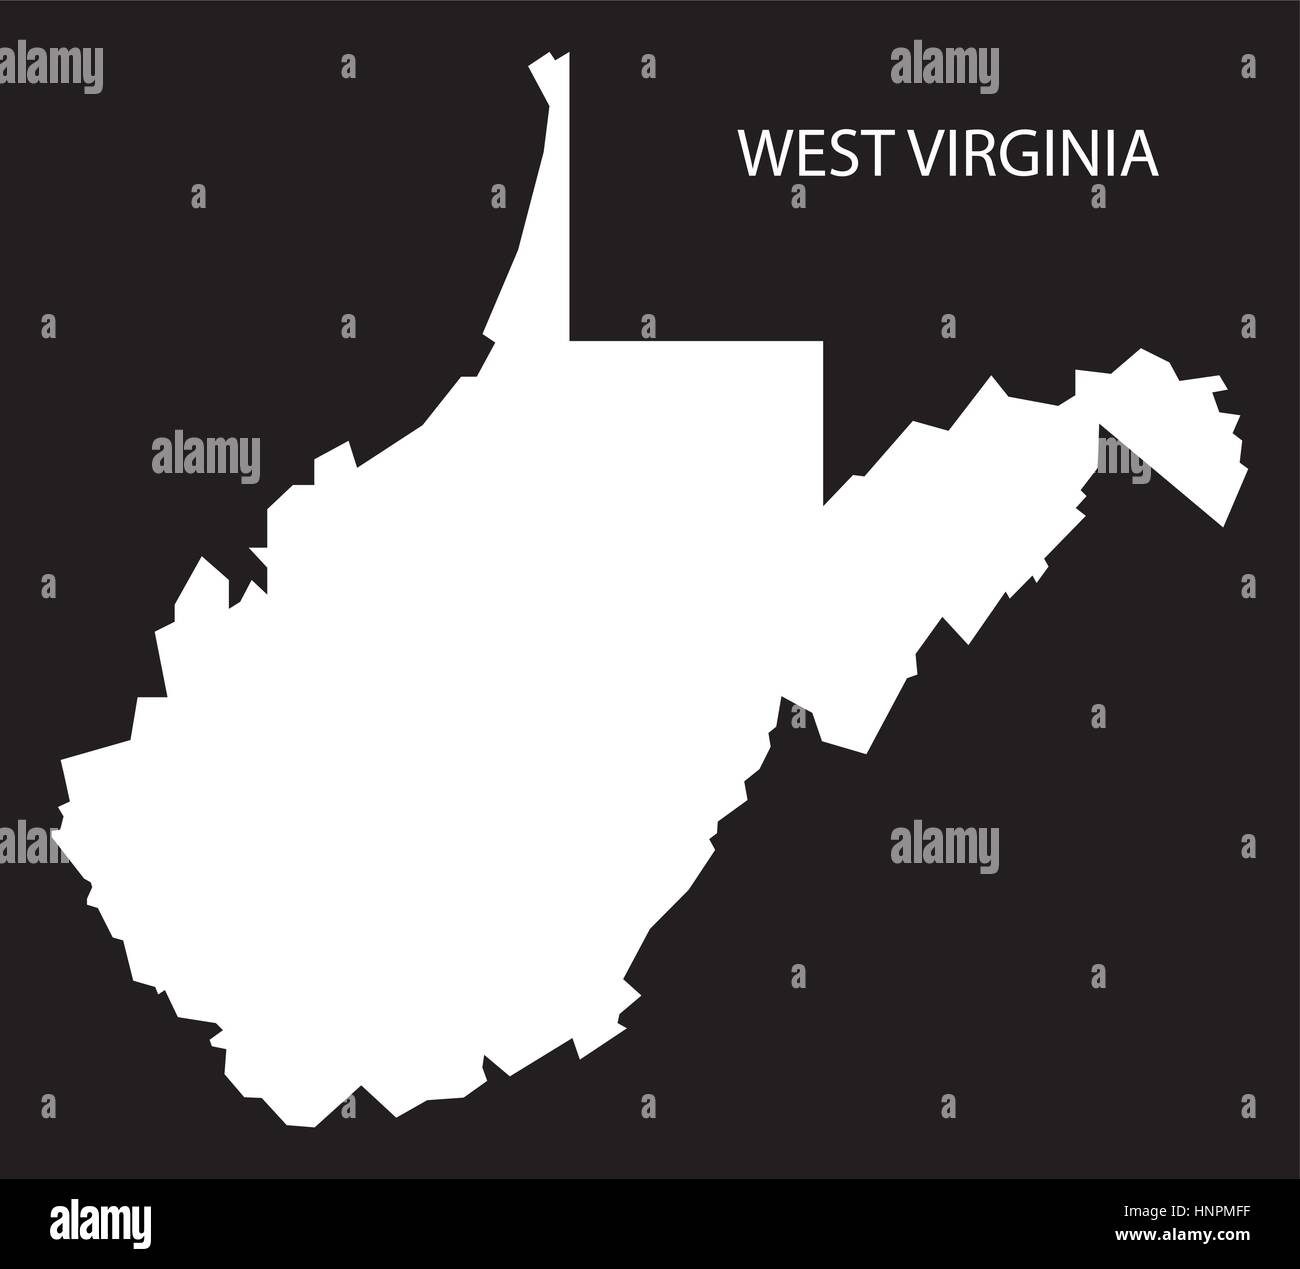 West Virginia USA Map black inverted silhouette Stock Vector Art ...